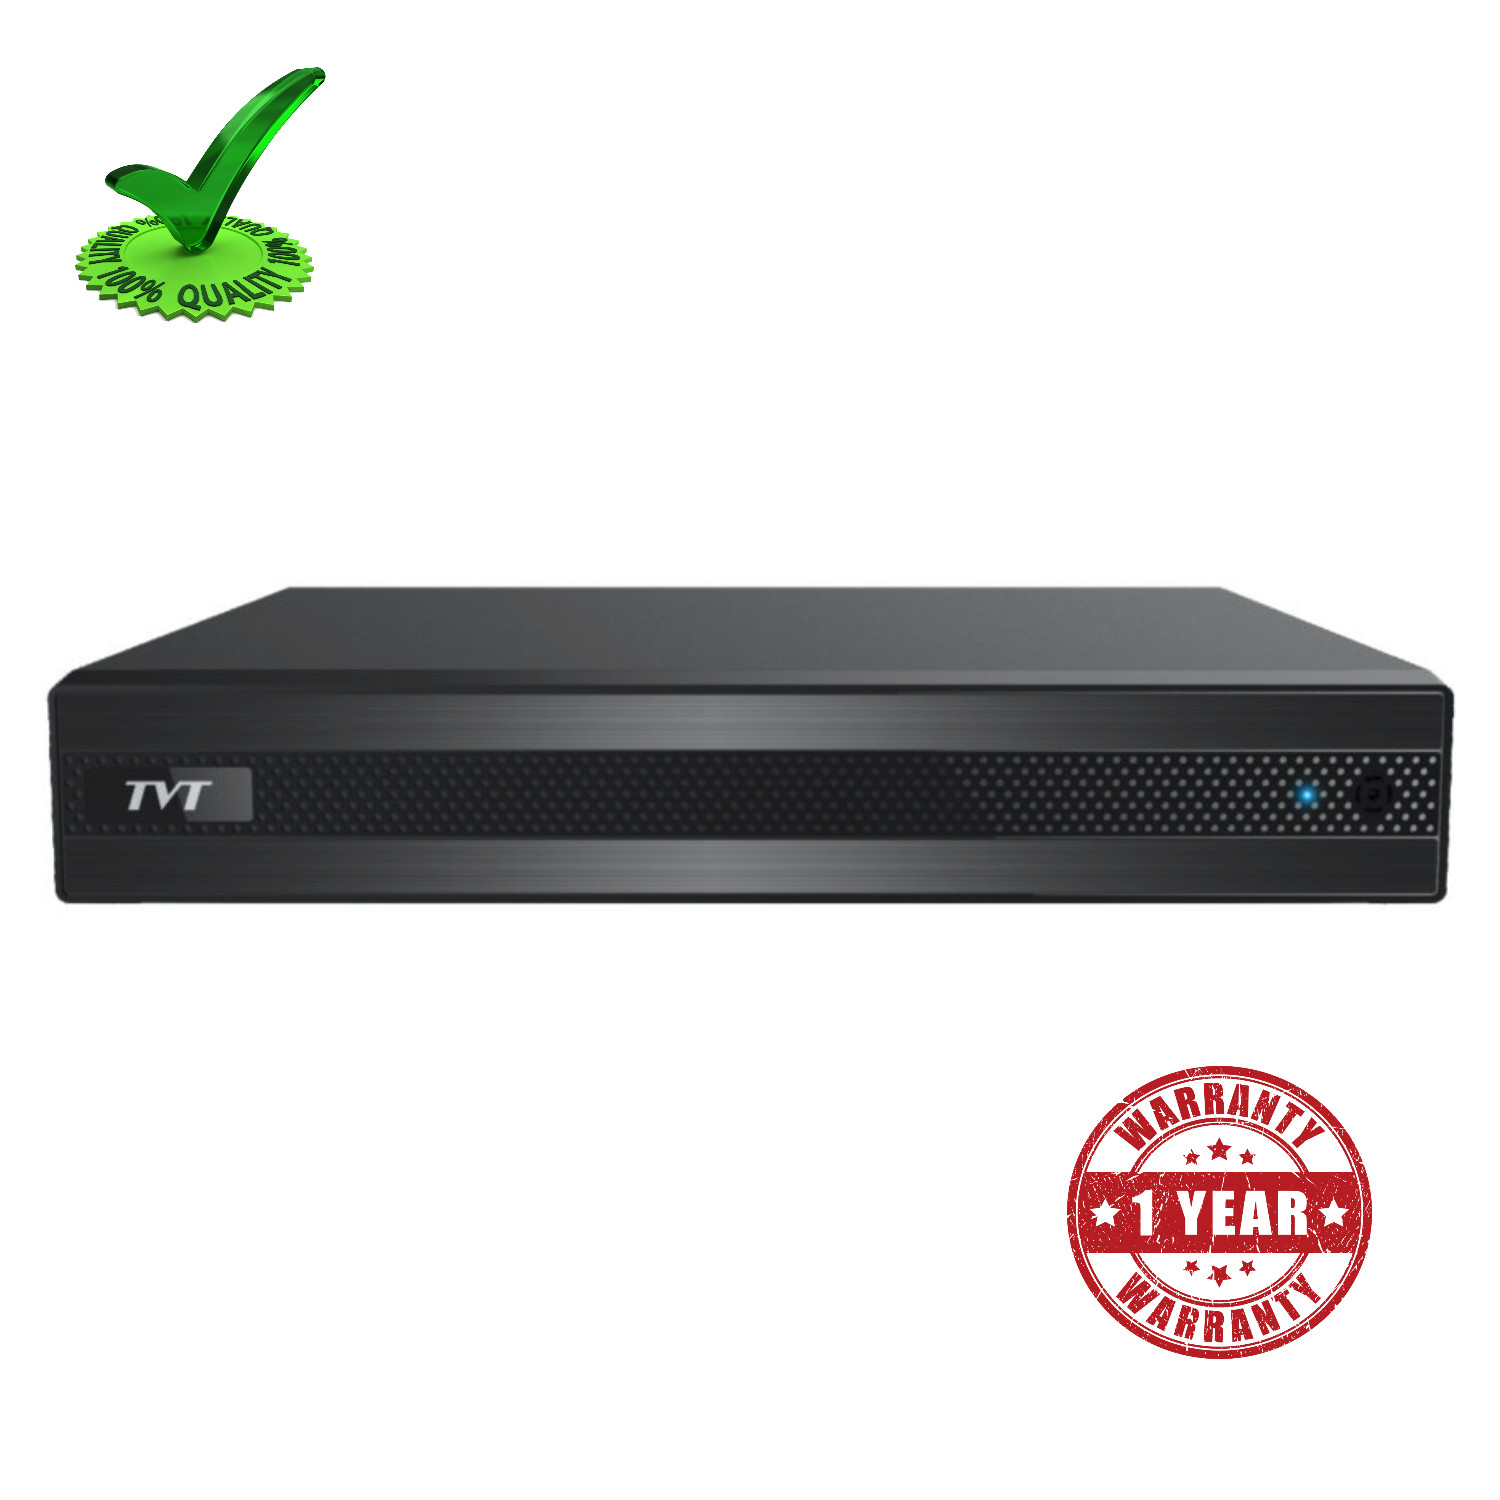 TVT TD 3108B1- 8ch Network Video Recorder HD Nvr